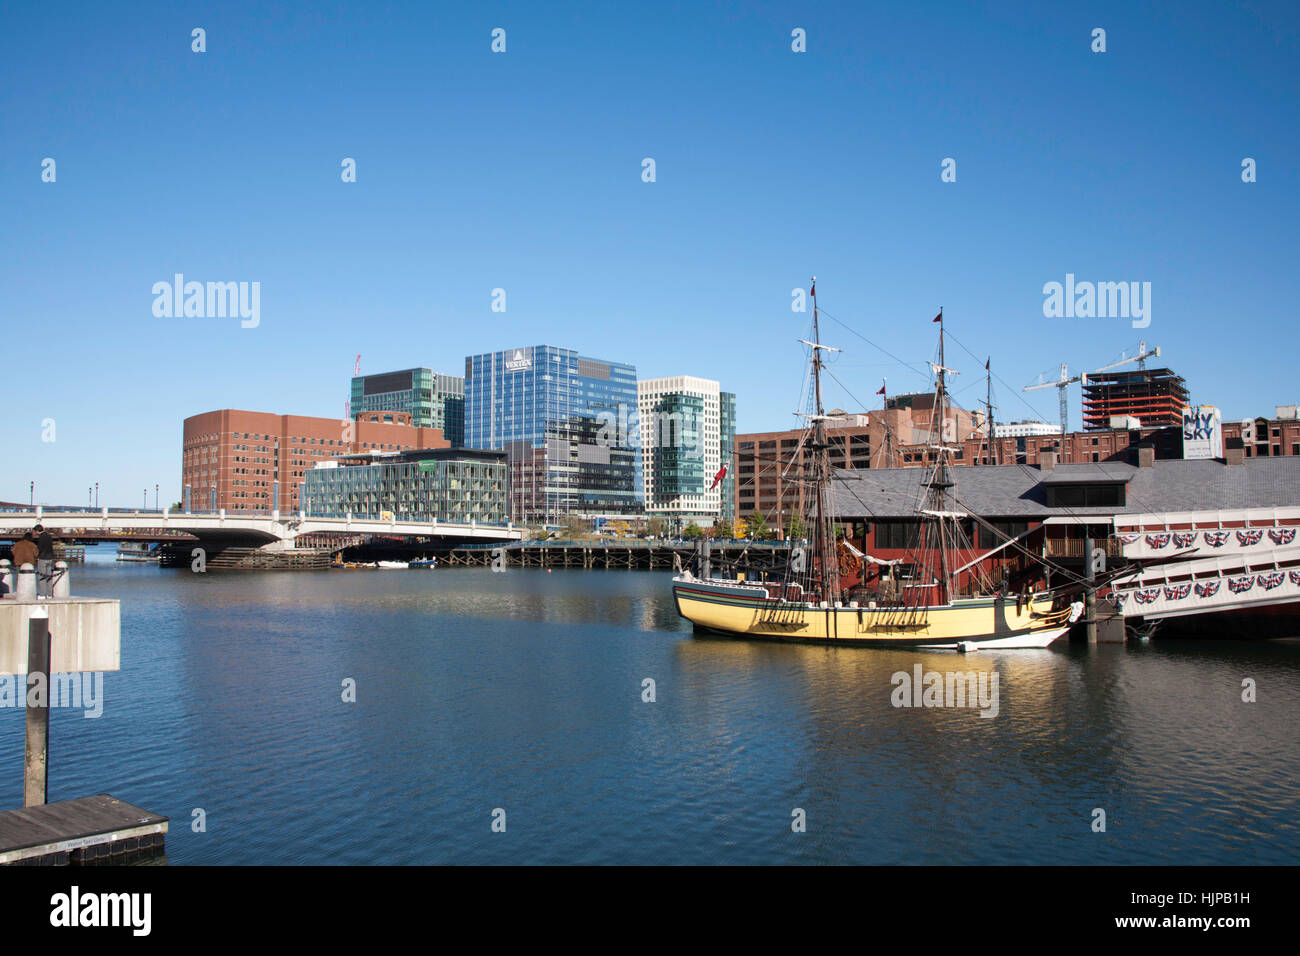 Replica Eighteenth Century sailing ships moored on The Bass River at The Boston Tea Party Museum Boston Massachusetts - Stock Image